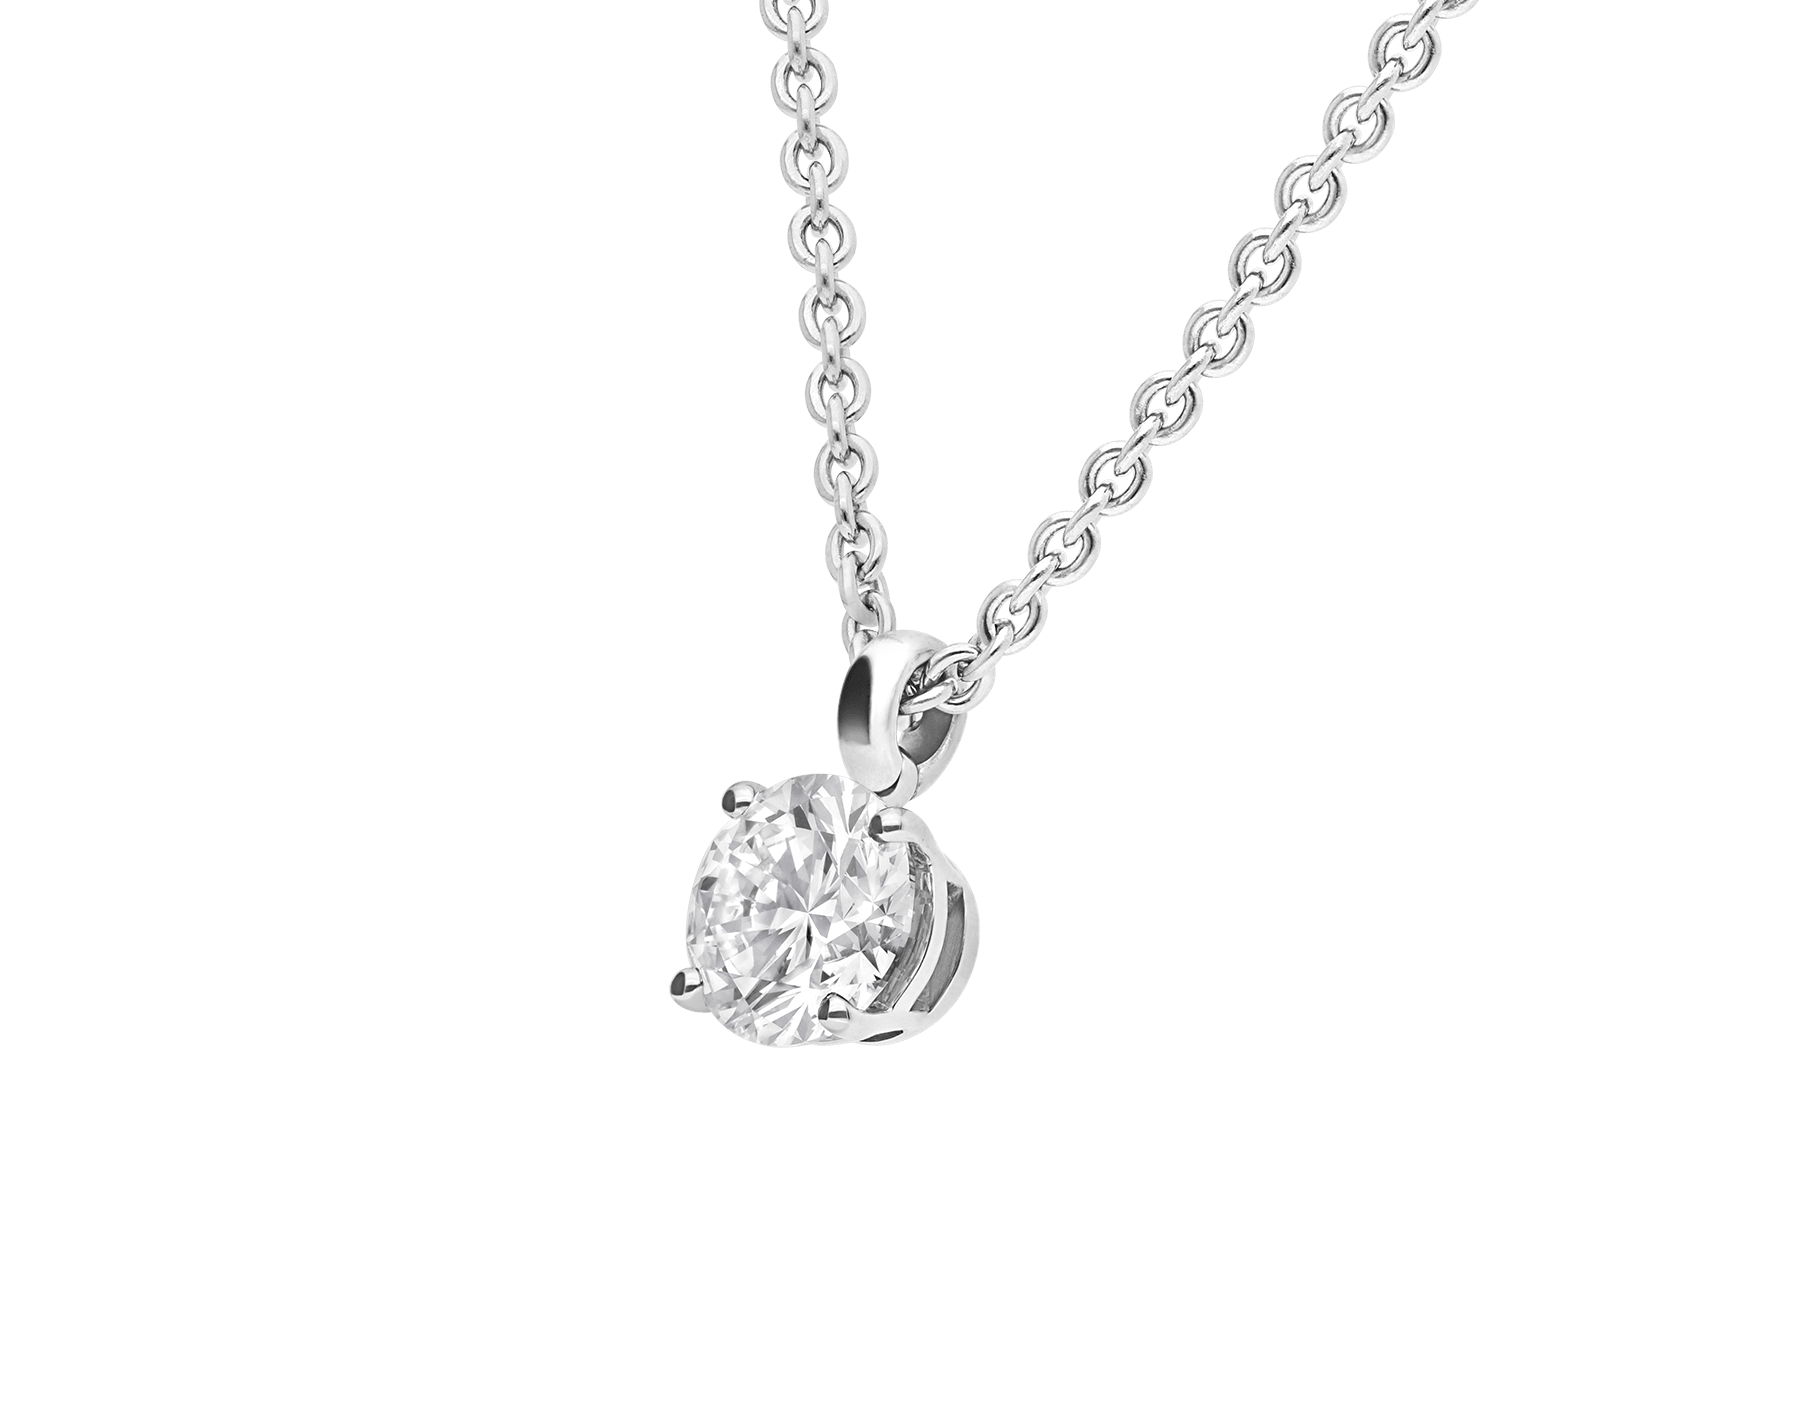 Griffe 18 kt white gold pendant with round brilliant cut diamond and 18 kt white gold chain 338201 image 4